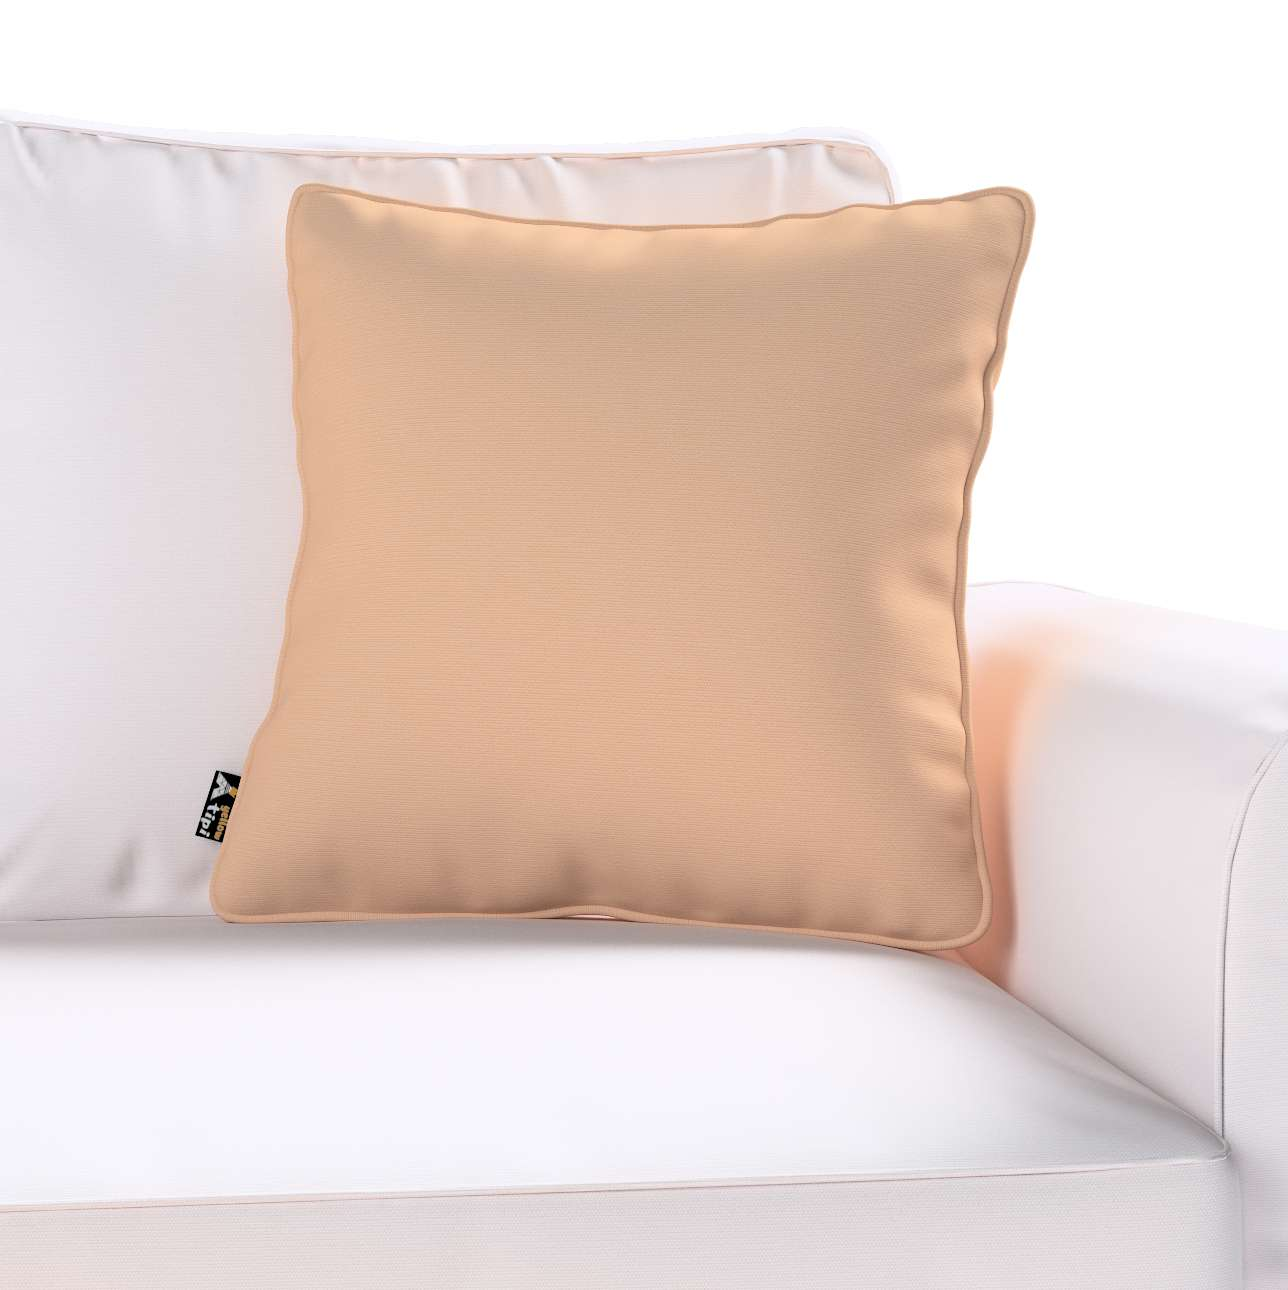 Lola piped cushion cover in collection Cotton Story, fabric: 702-01